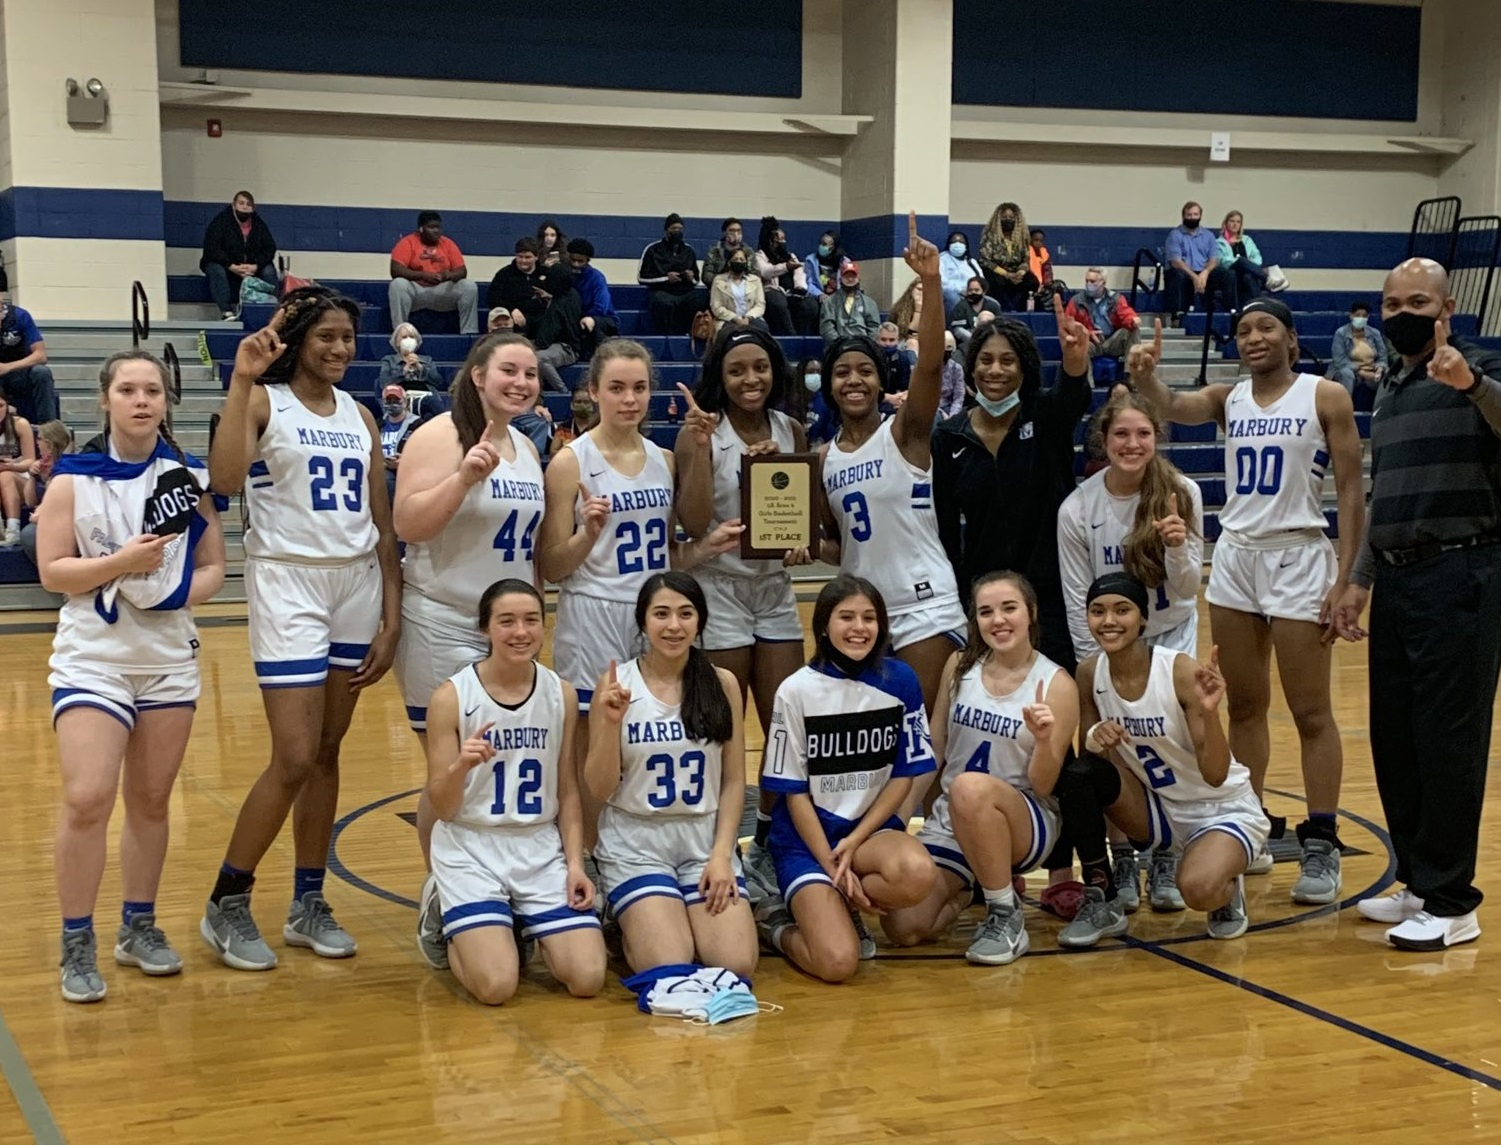 Class 5A Area Champs 2021!